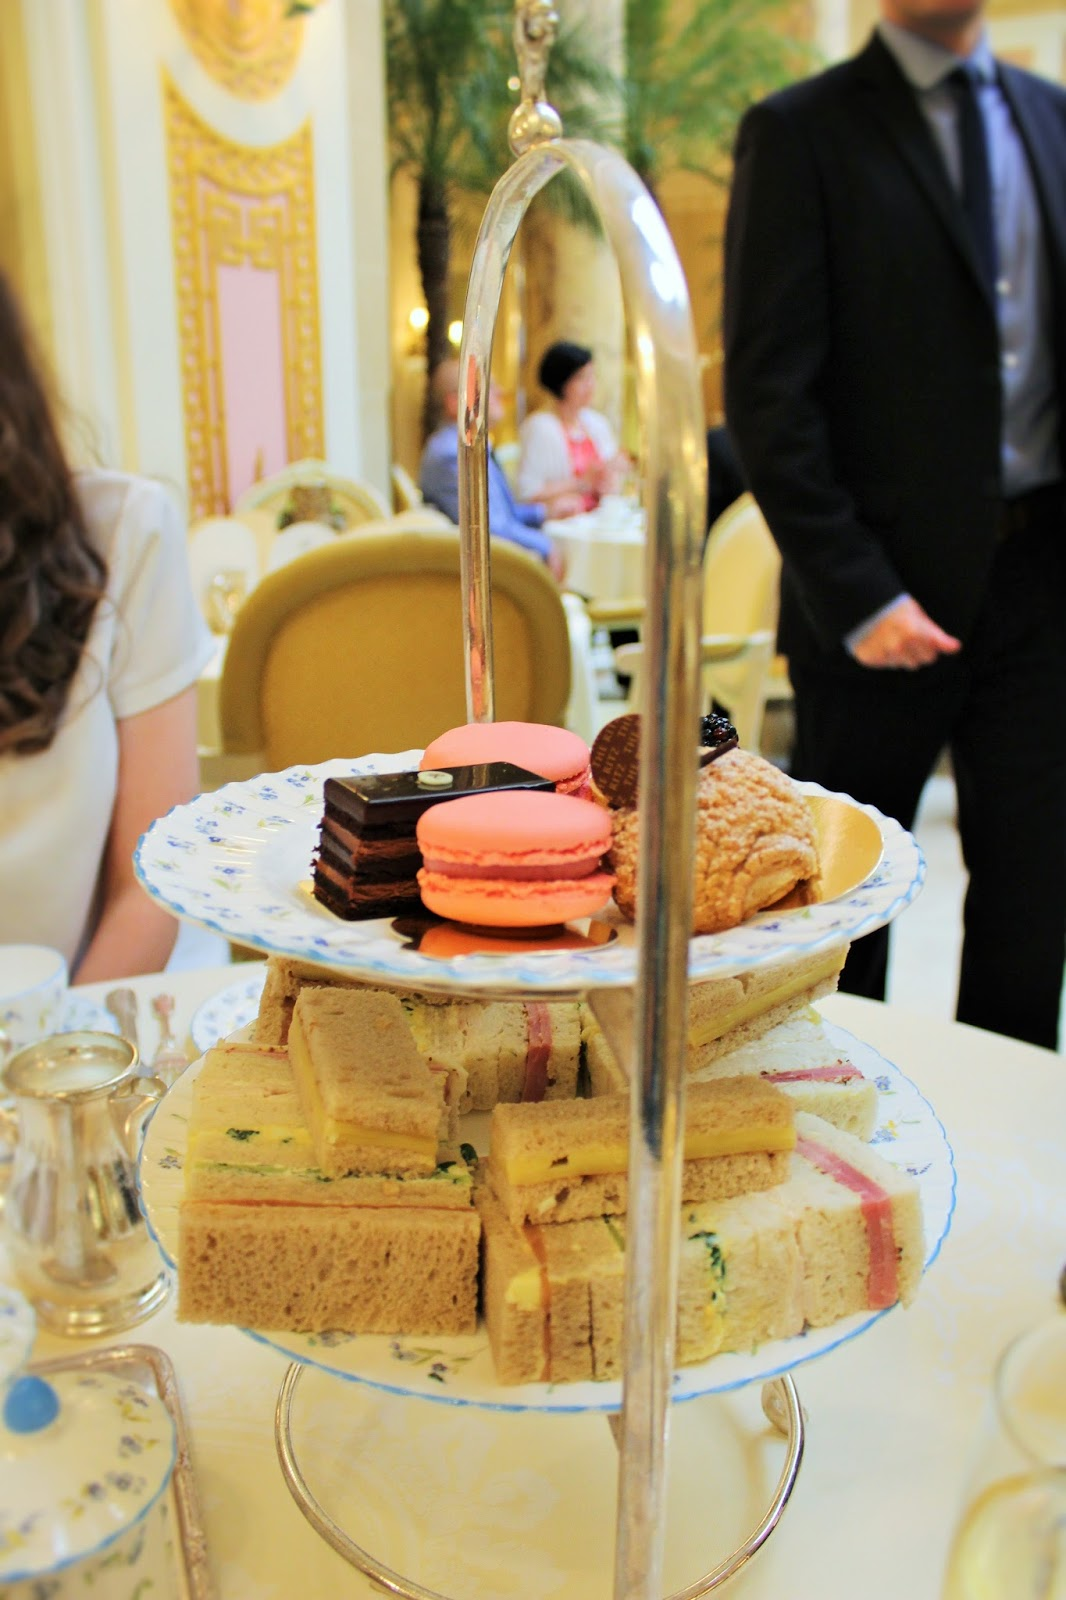 Afternoon Tea at The Ritz, London